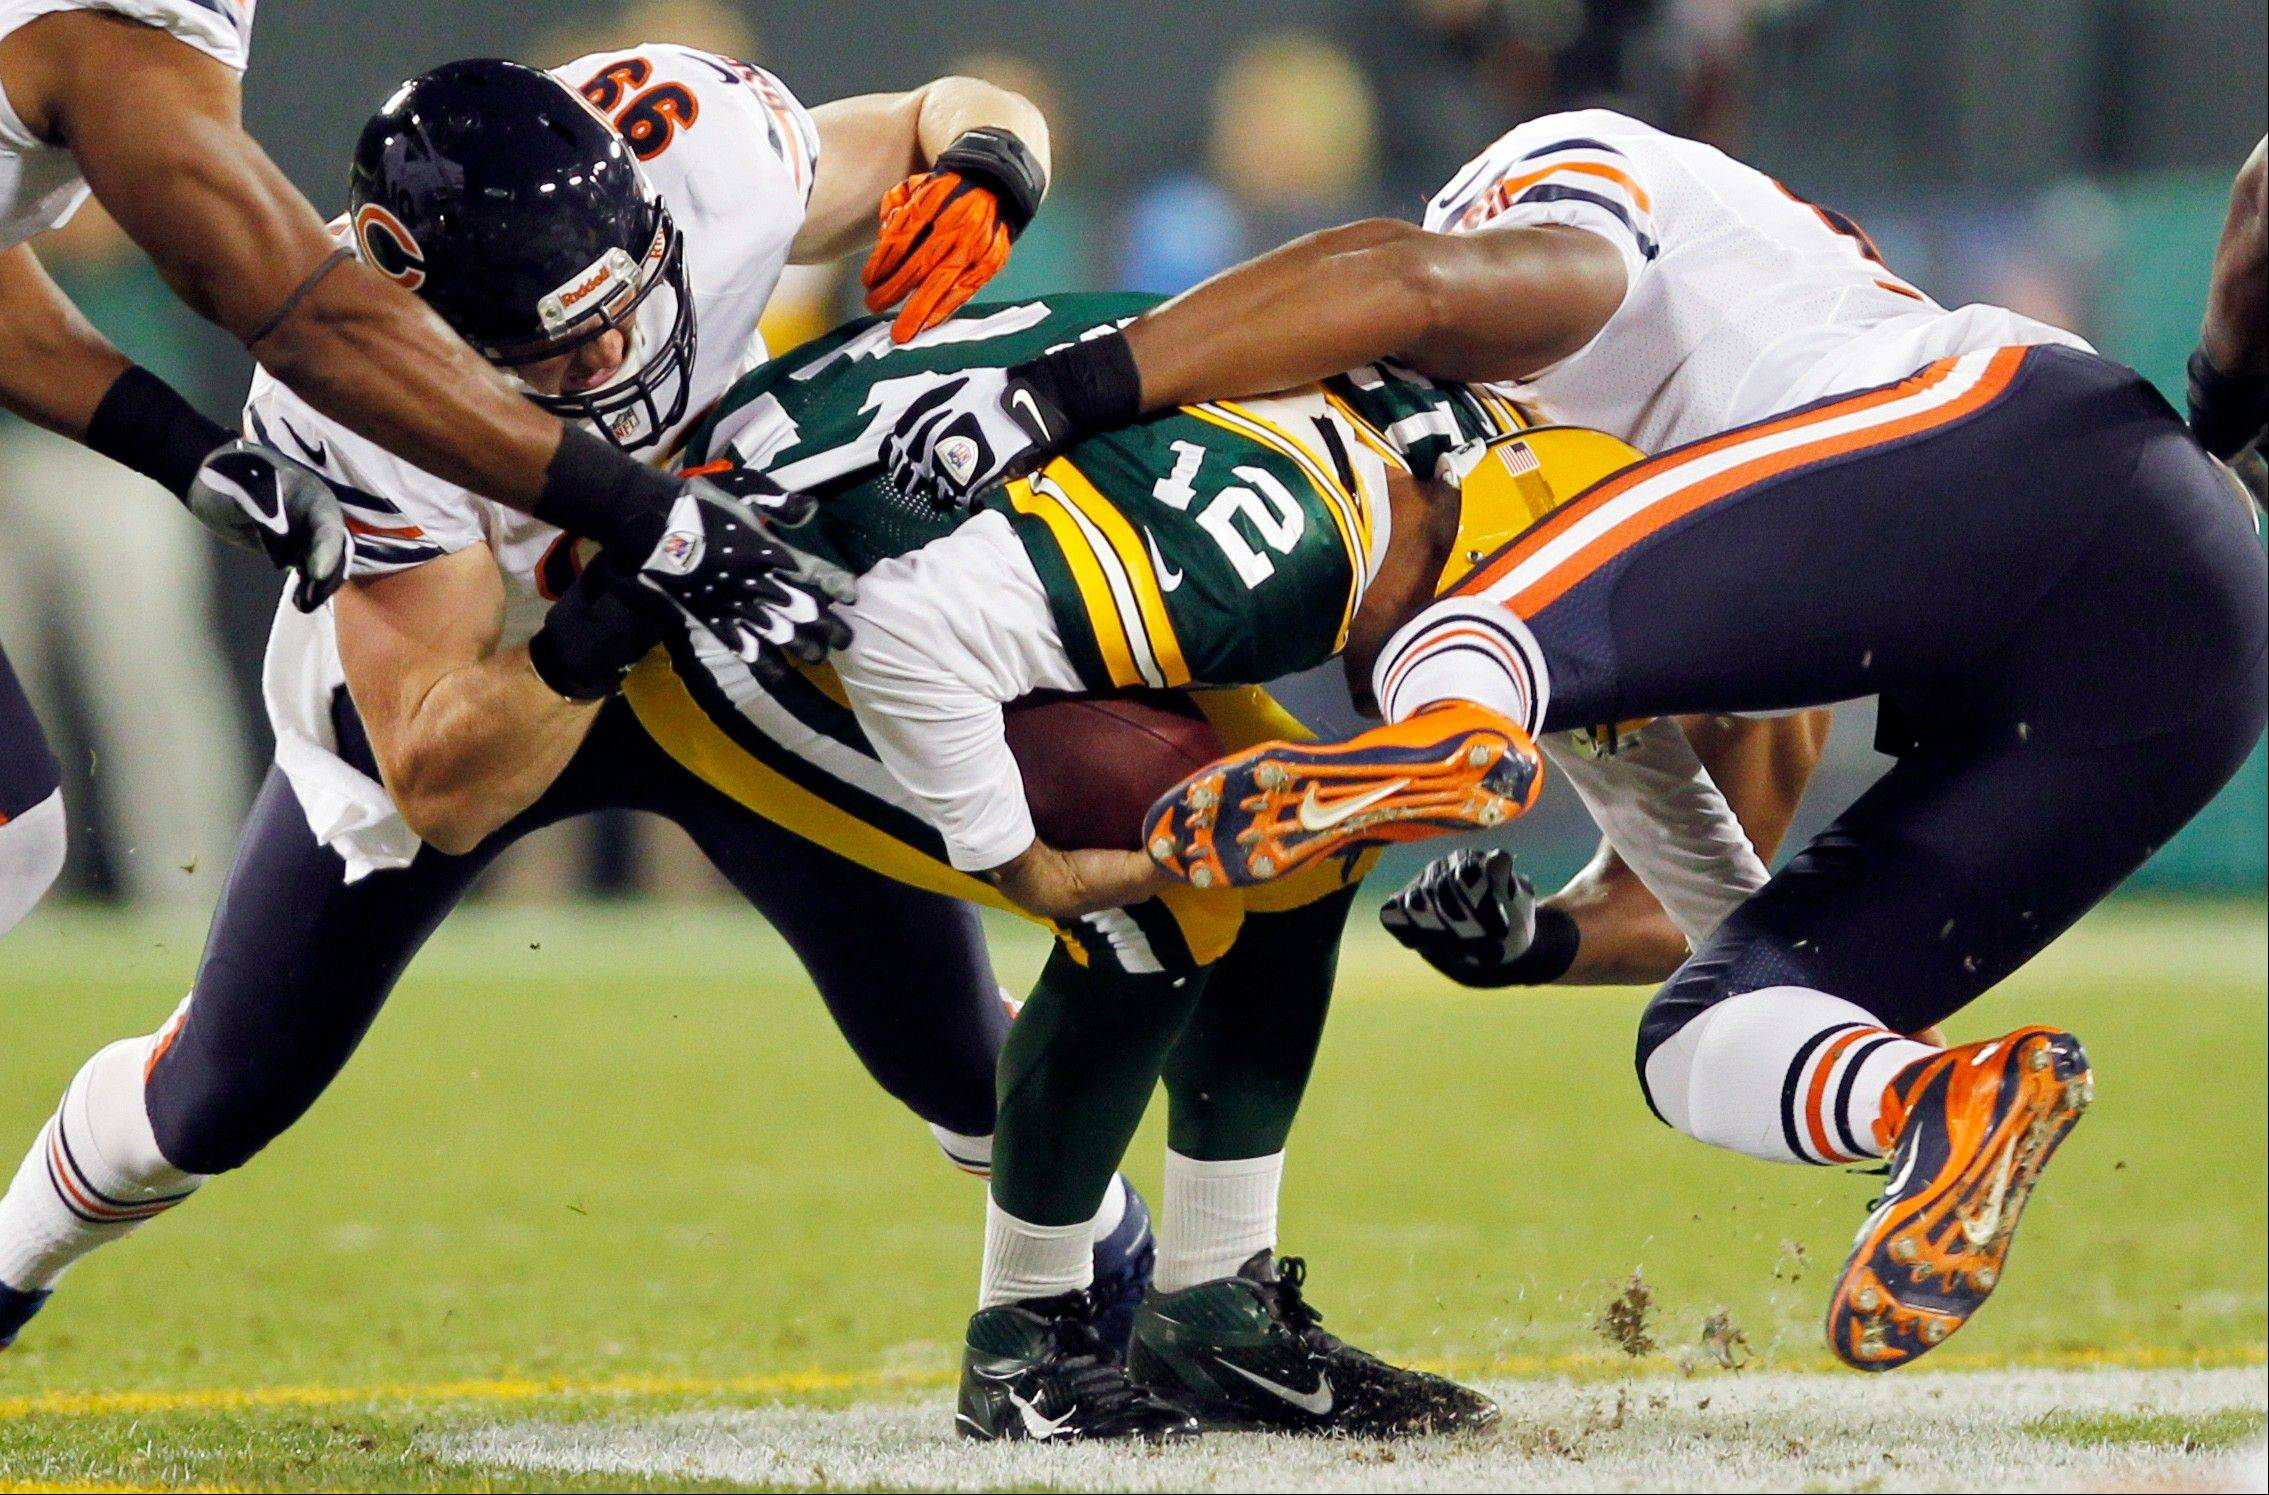 Corey Wootton (98) and Shea McClellin (99) of the Bears combined forces to sack Packers quarterback Aaron Rodgers in their game last week. After two weeks, the Bears' defense already has 8 sacks.